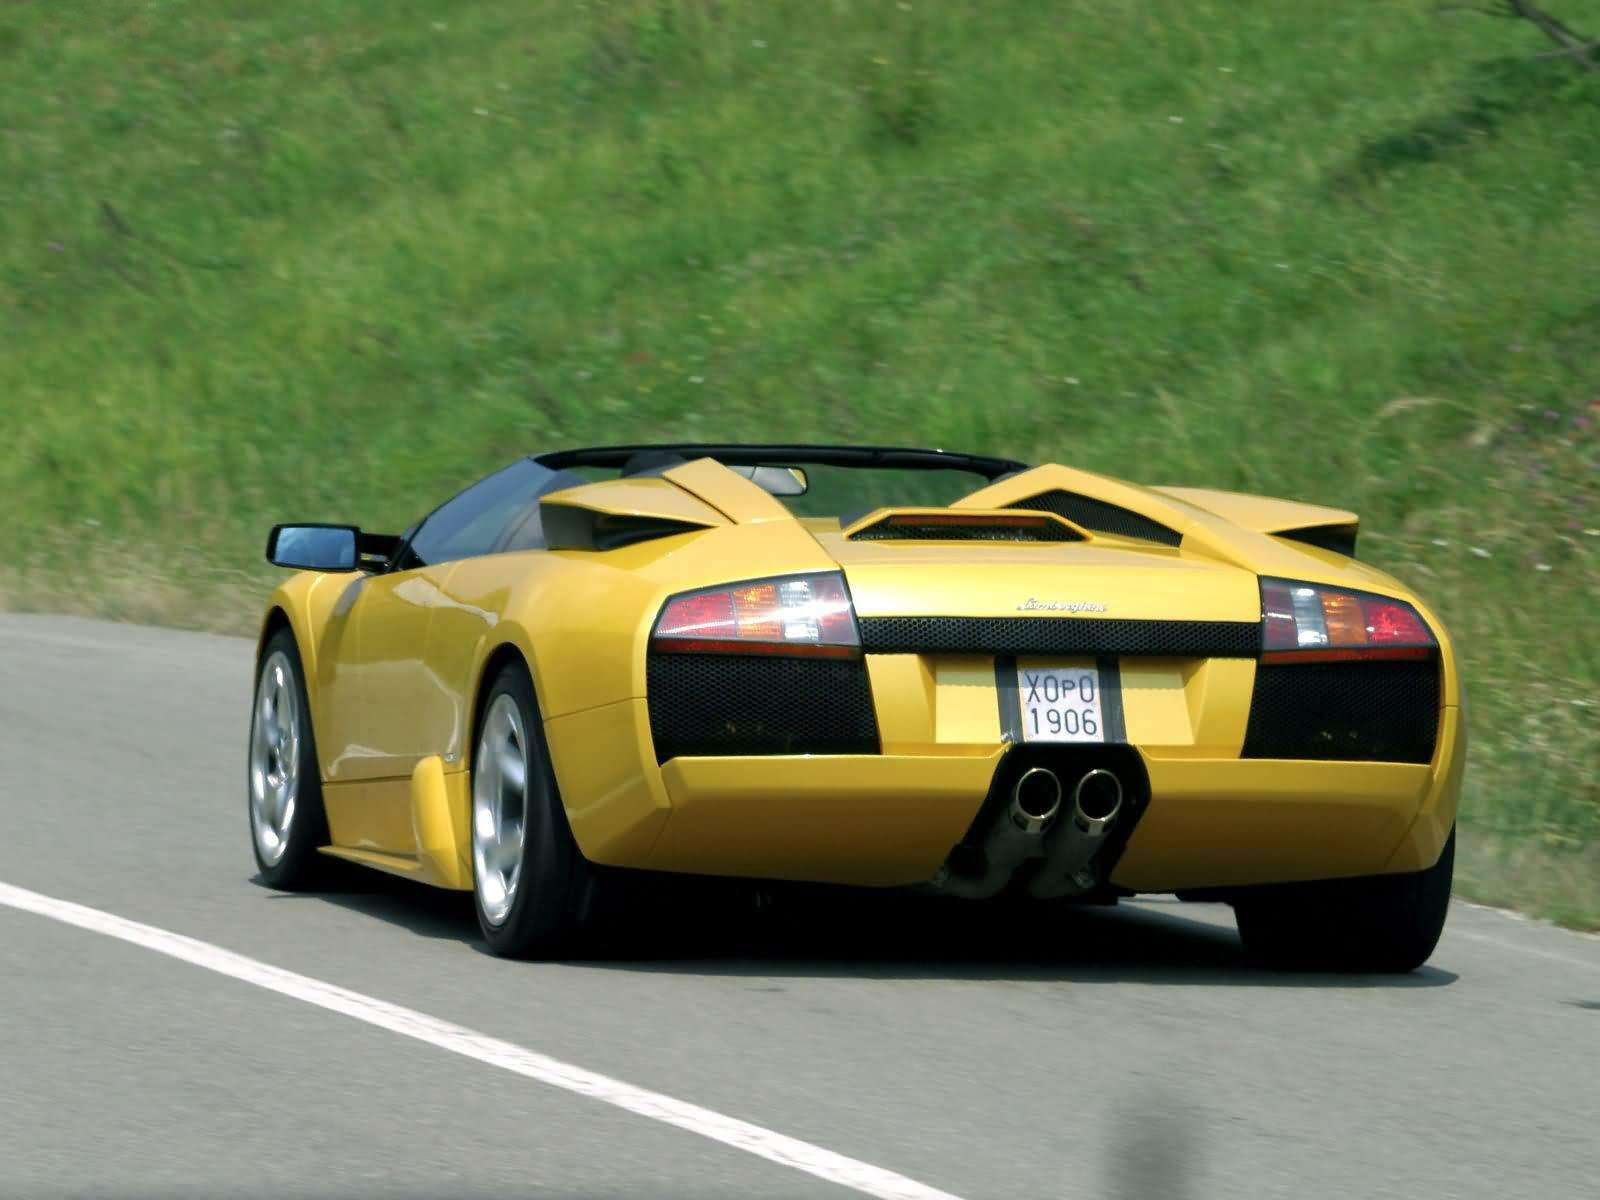 Car accident lawyers. 2004 LAMBORGHINI Murcielago Roadster pictures